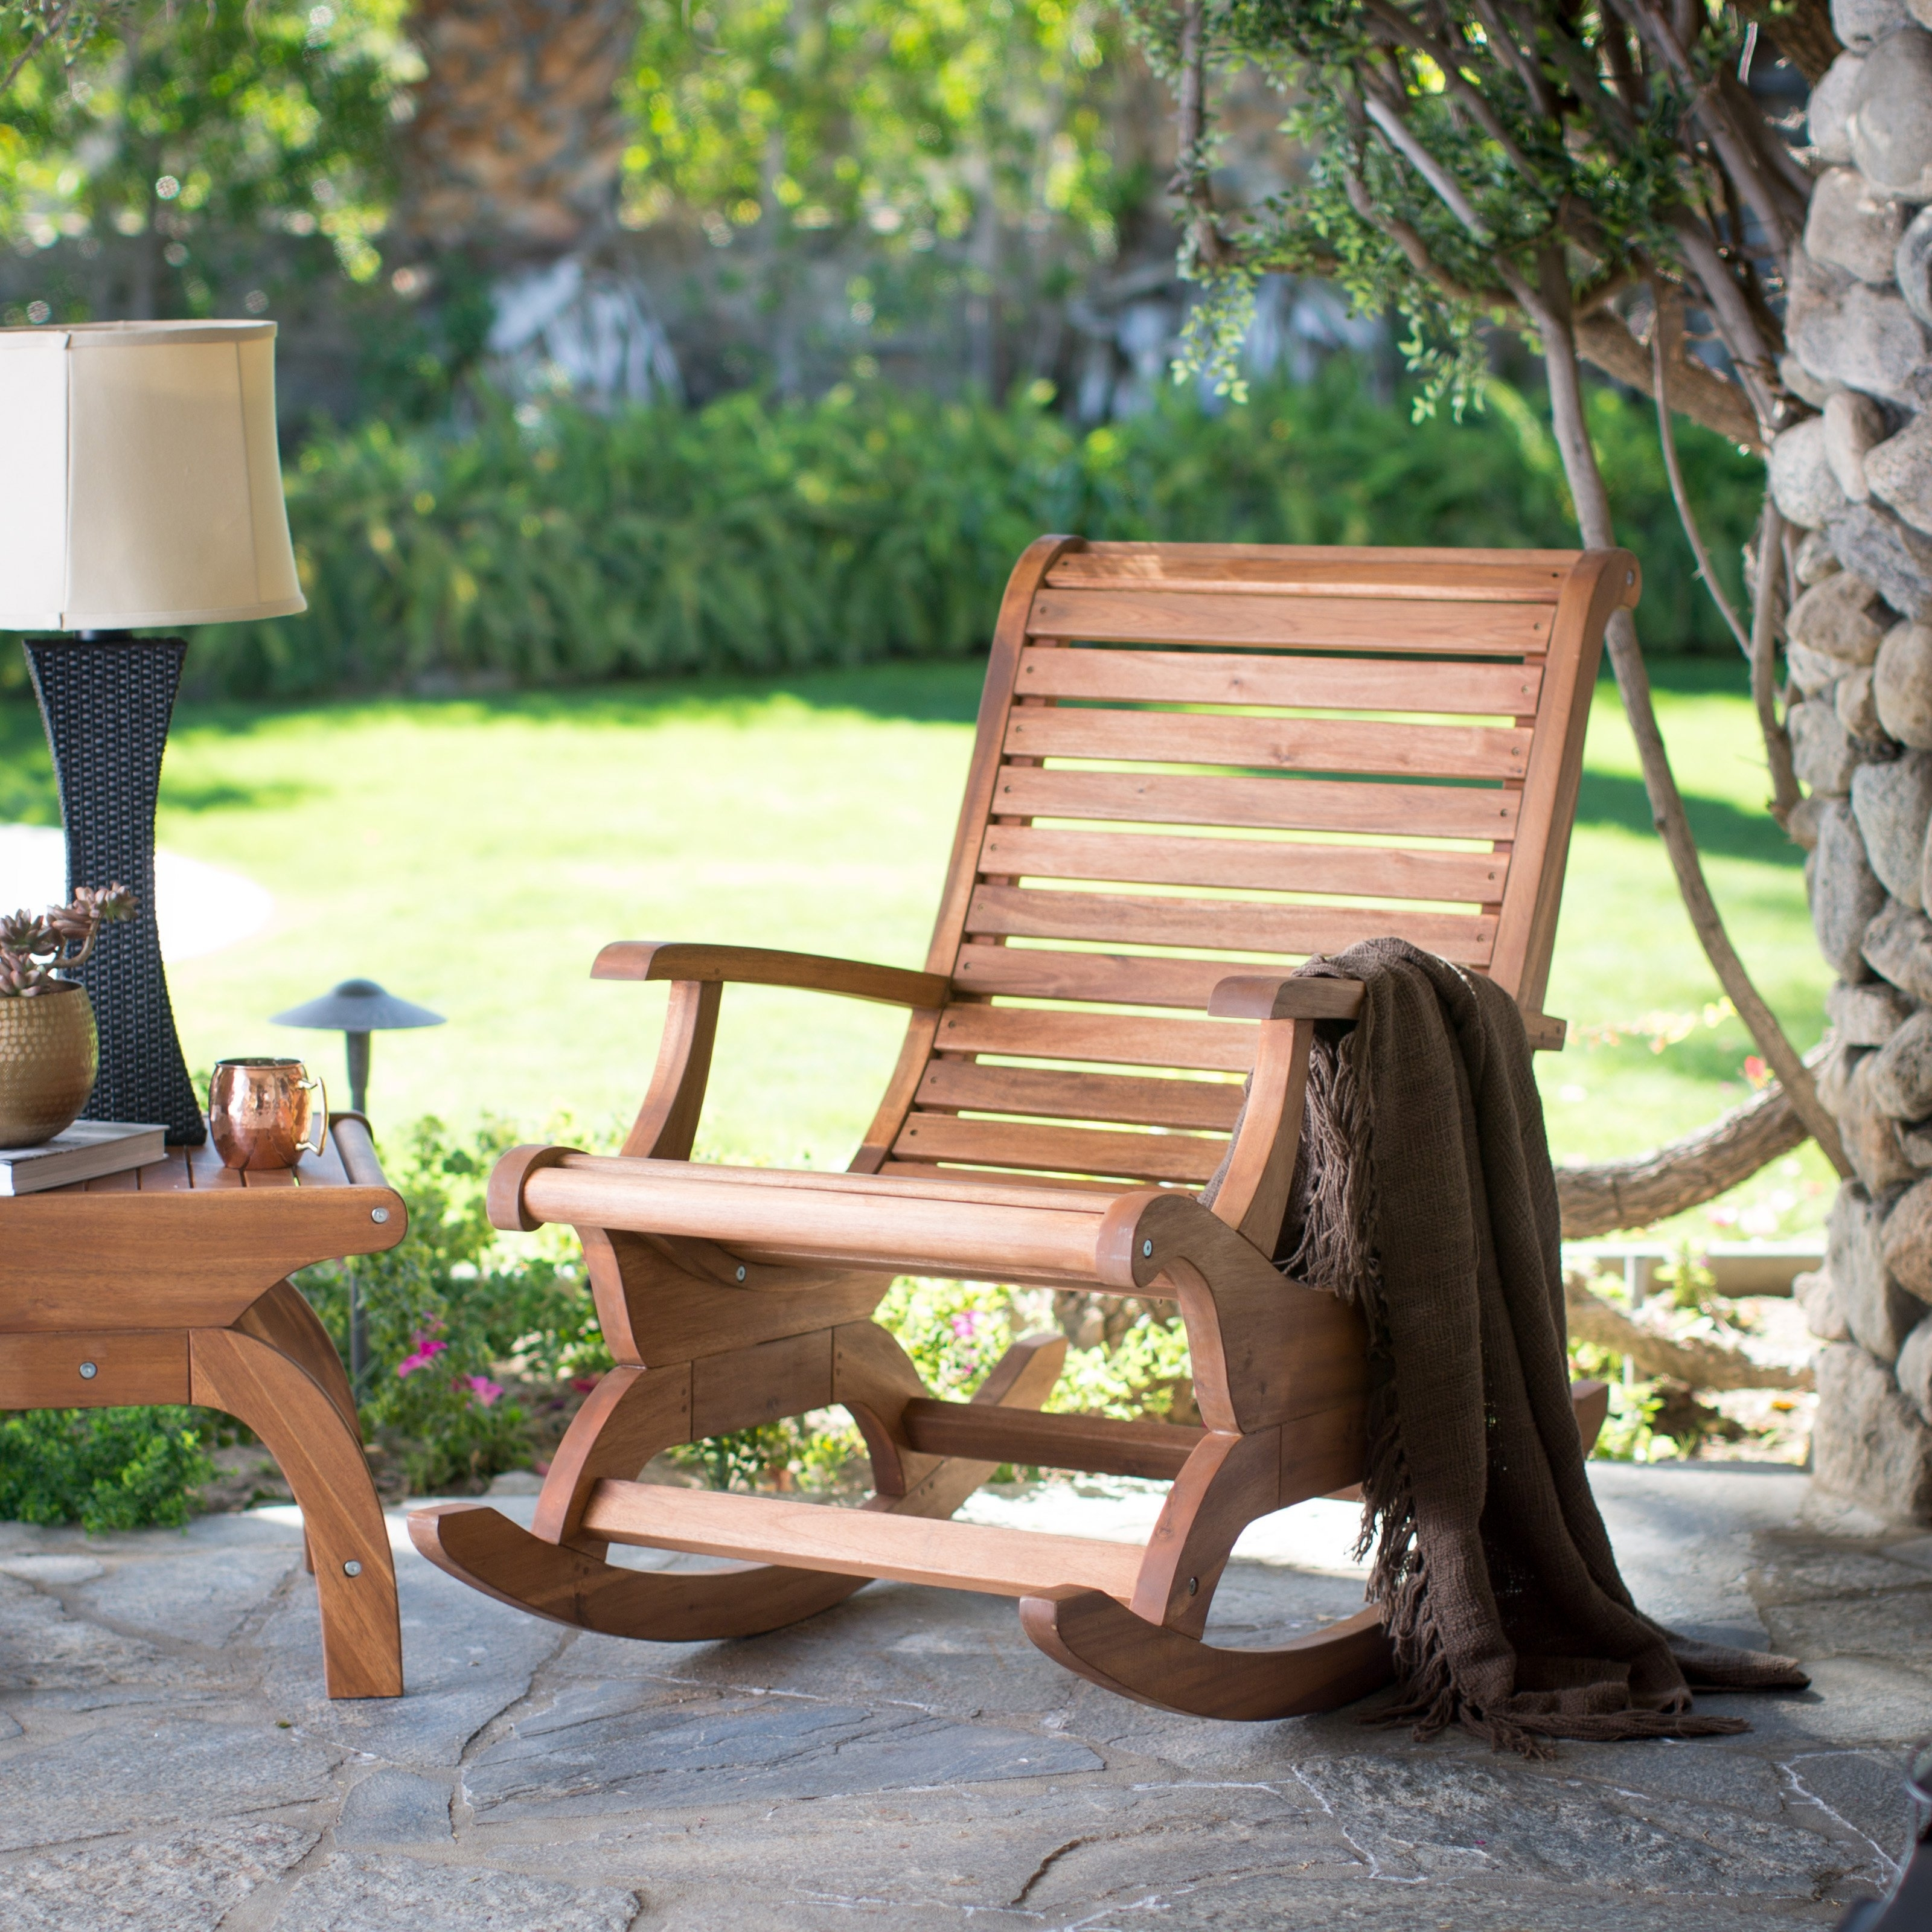 Belham Living Avondale Oversized Outdoor Rocking Chair – Natural For Rocking Chairs For Outside (#2 of 15)